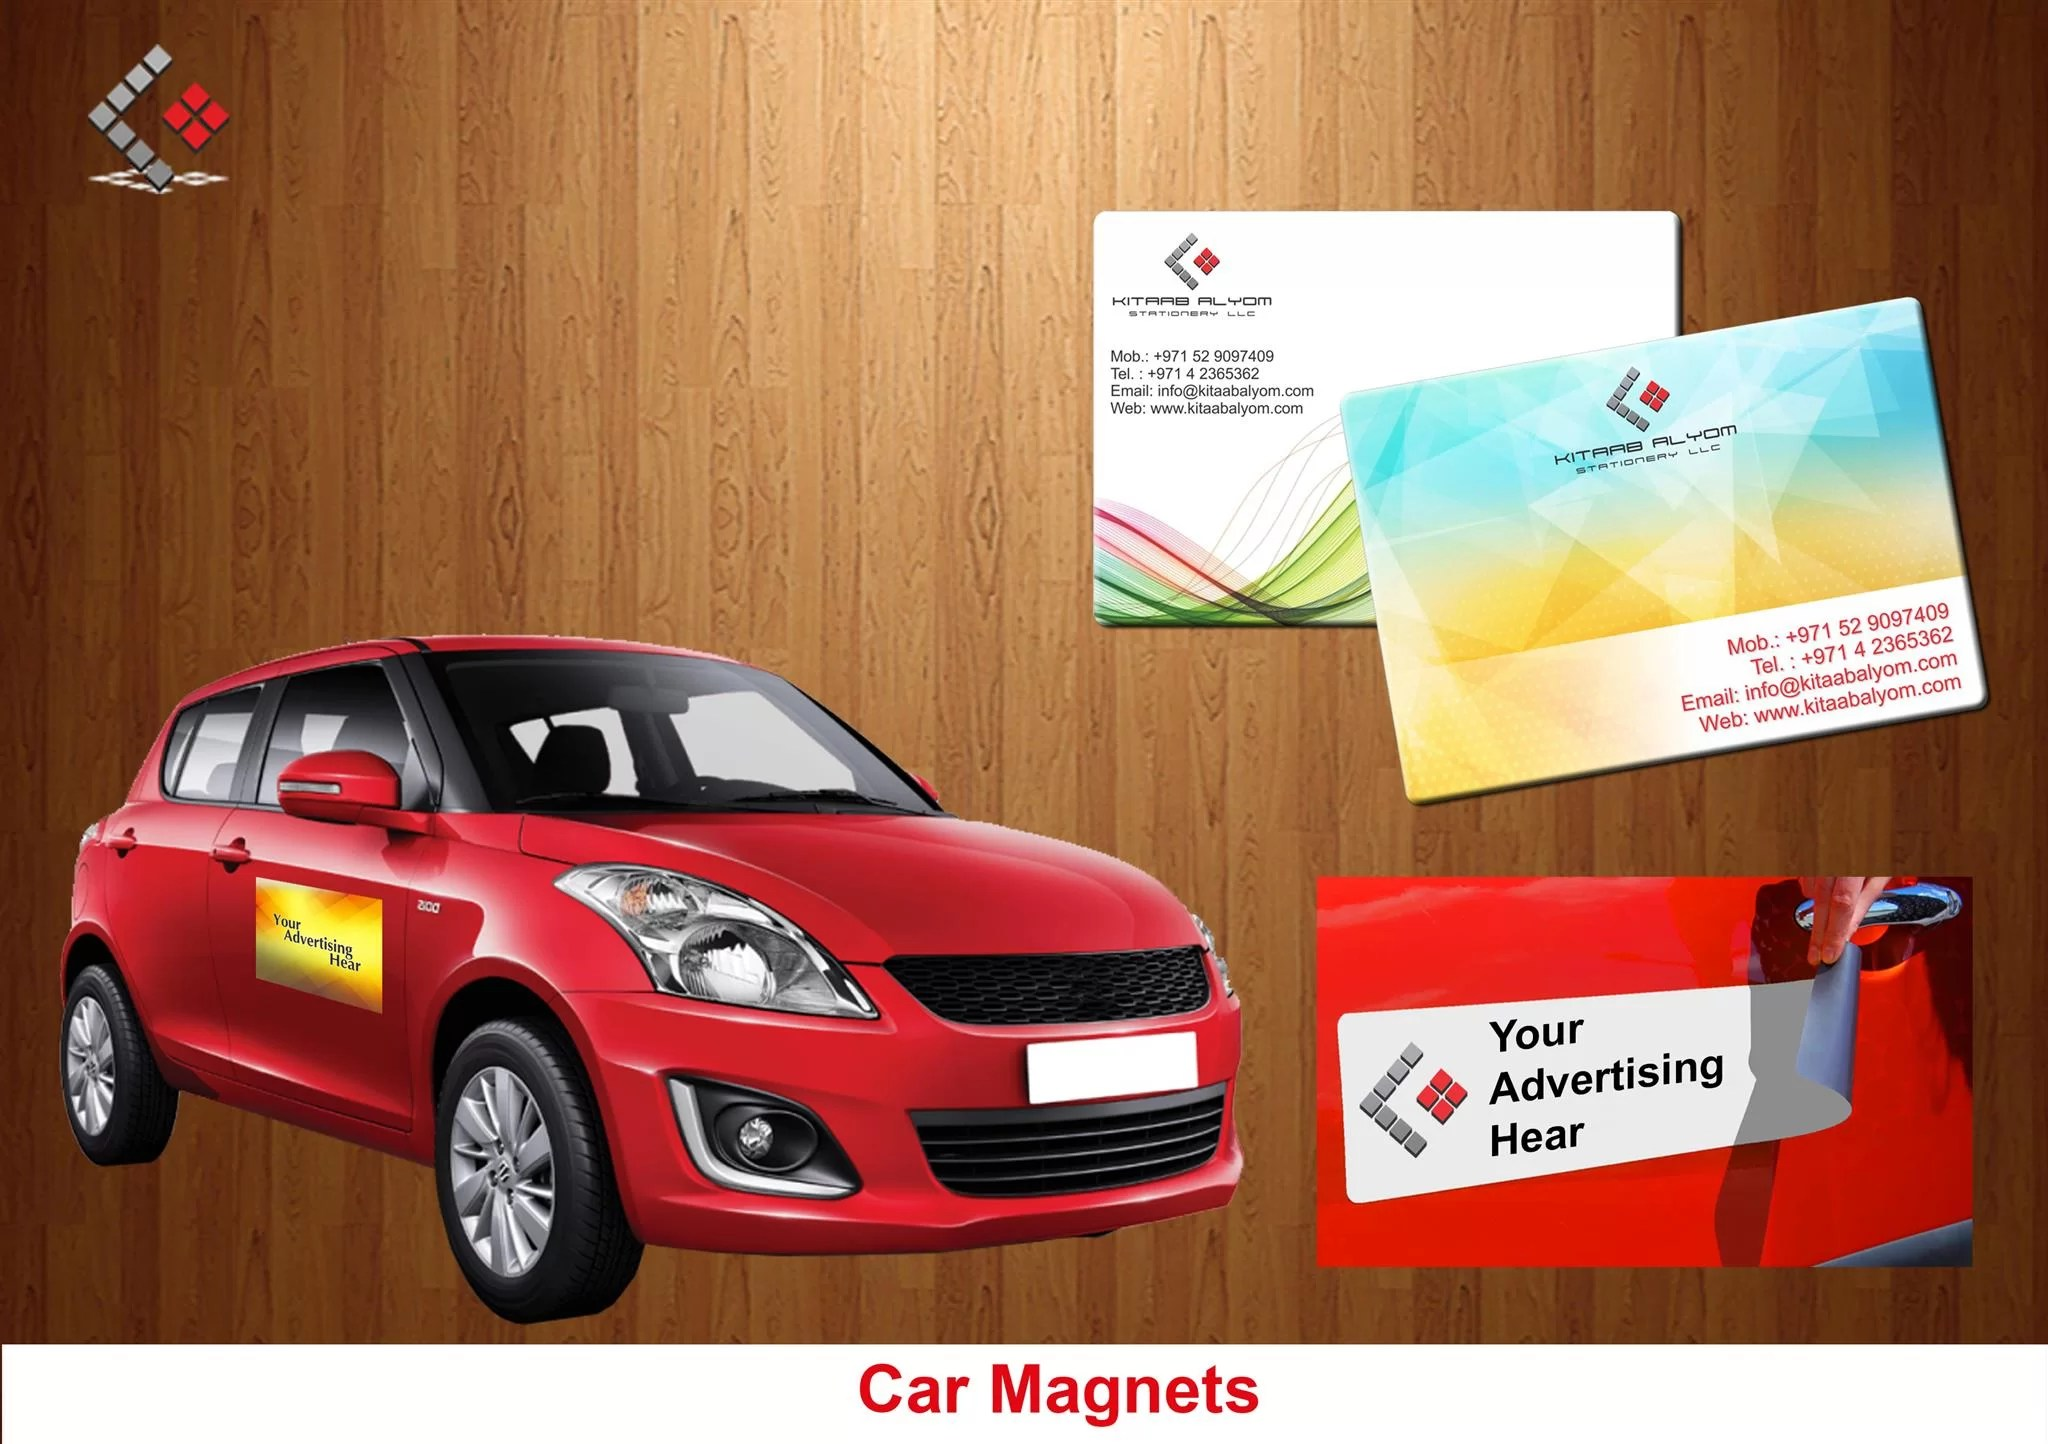 Car Magnets, Magnets Promotional Items in Dubai & abu Dhabi